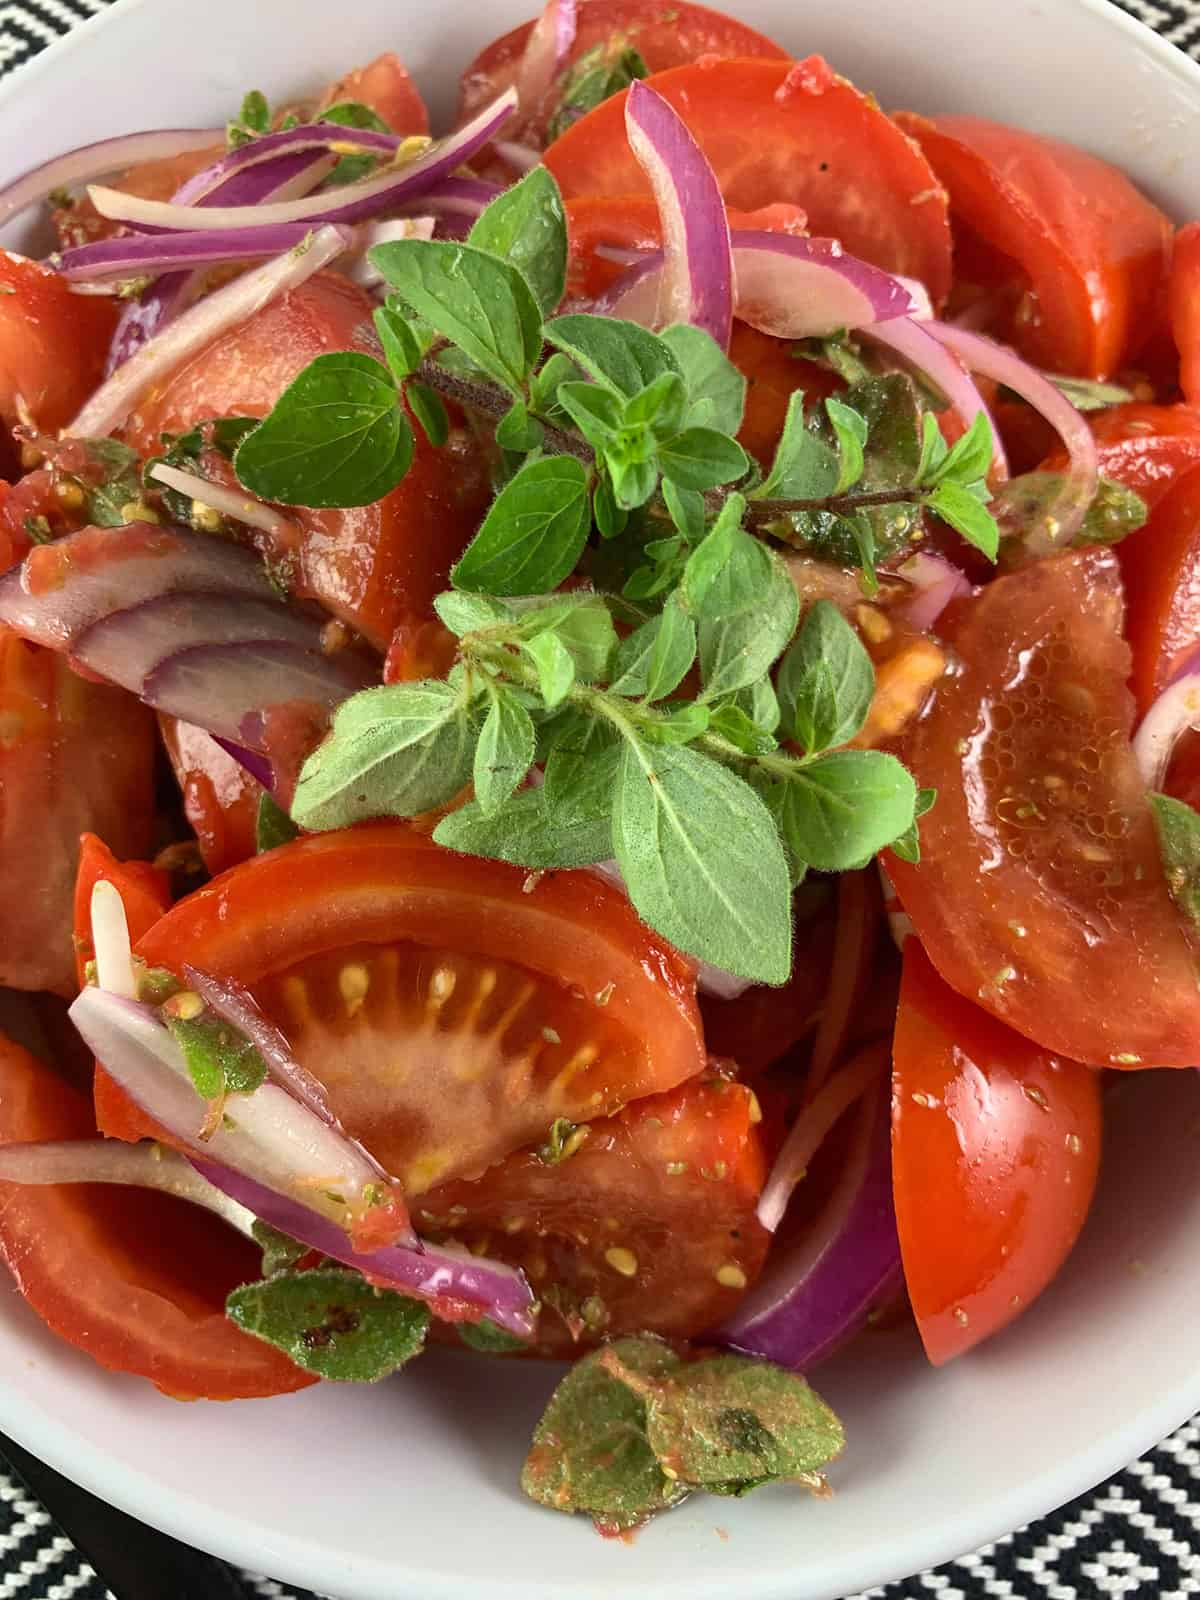 CLOSE-UP-OF-TOMATO-SALAD